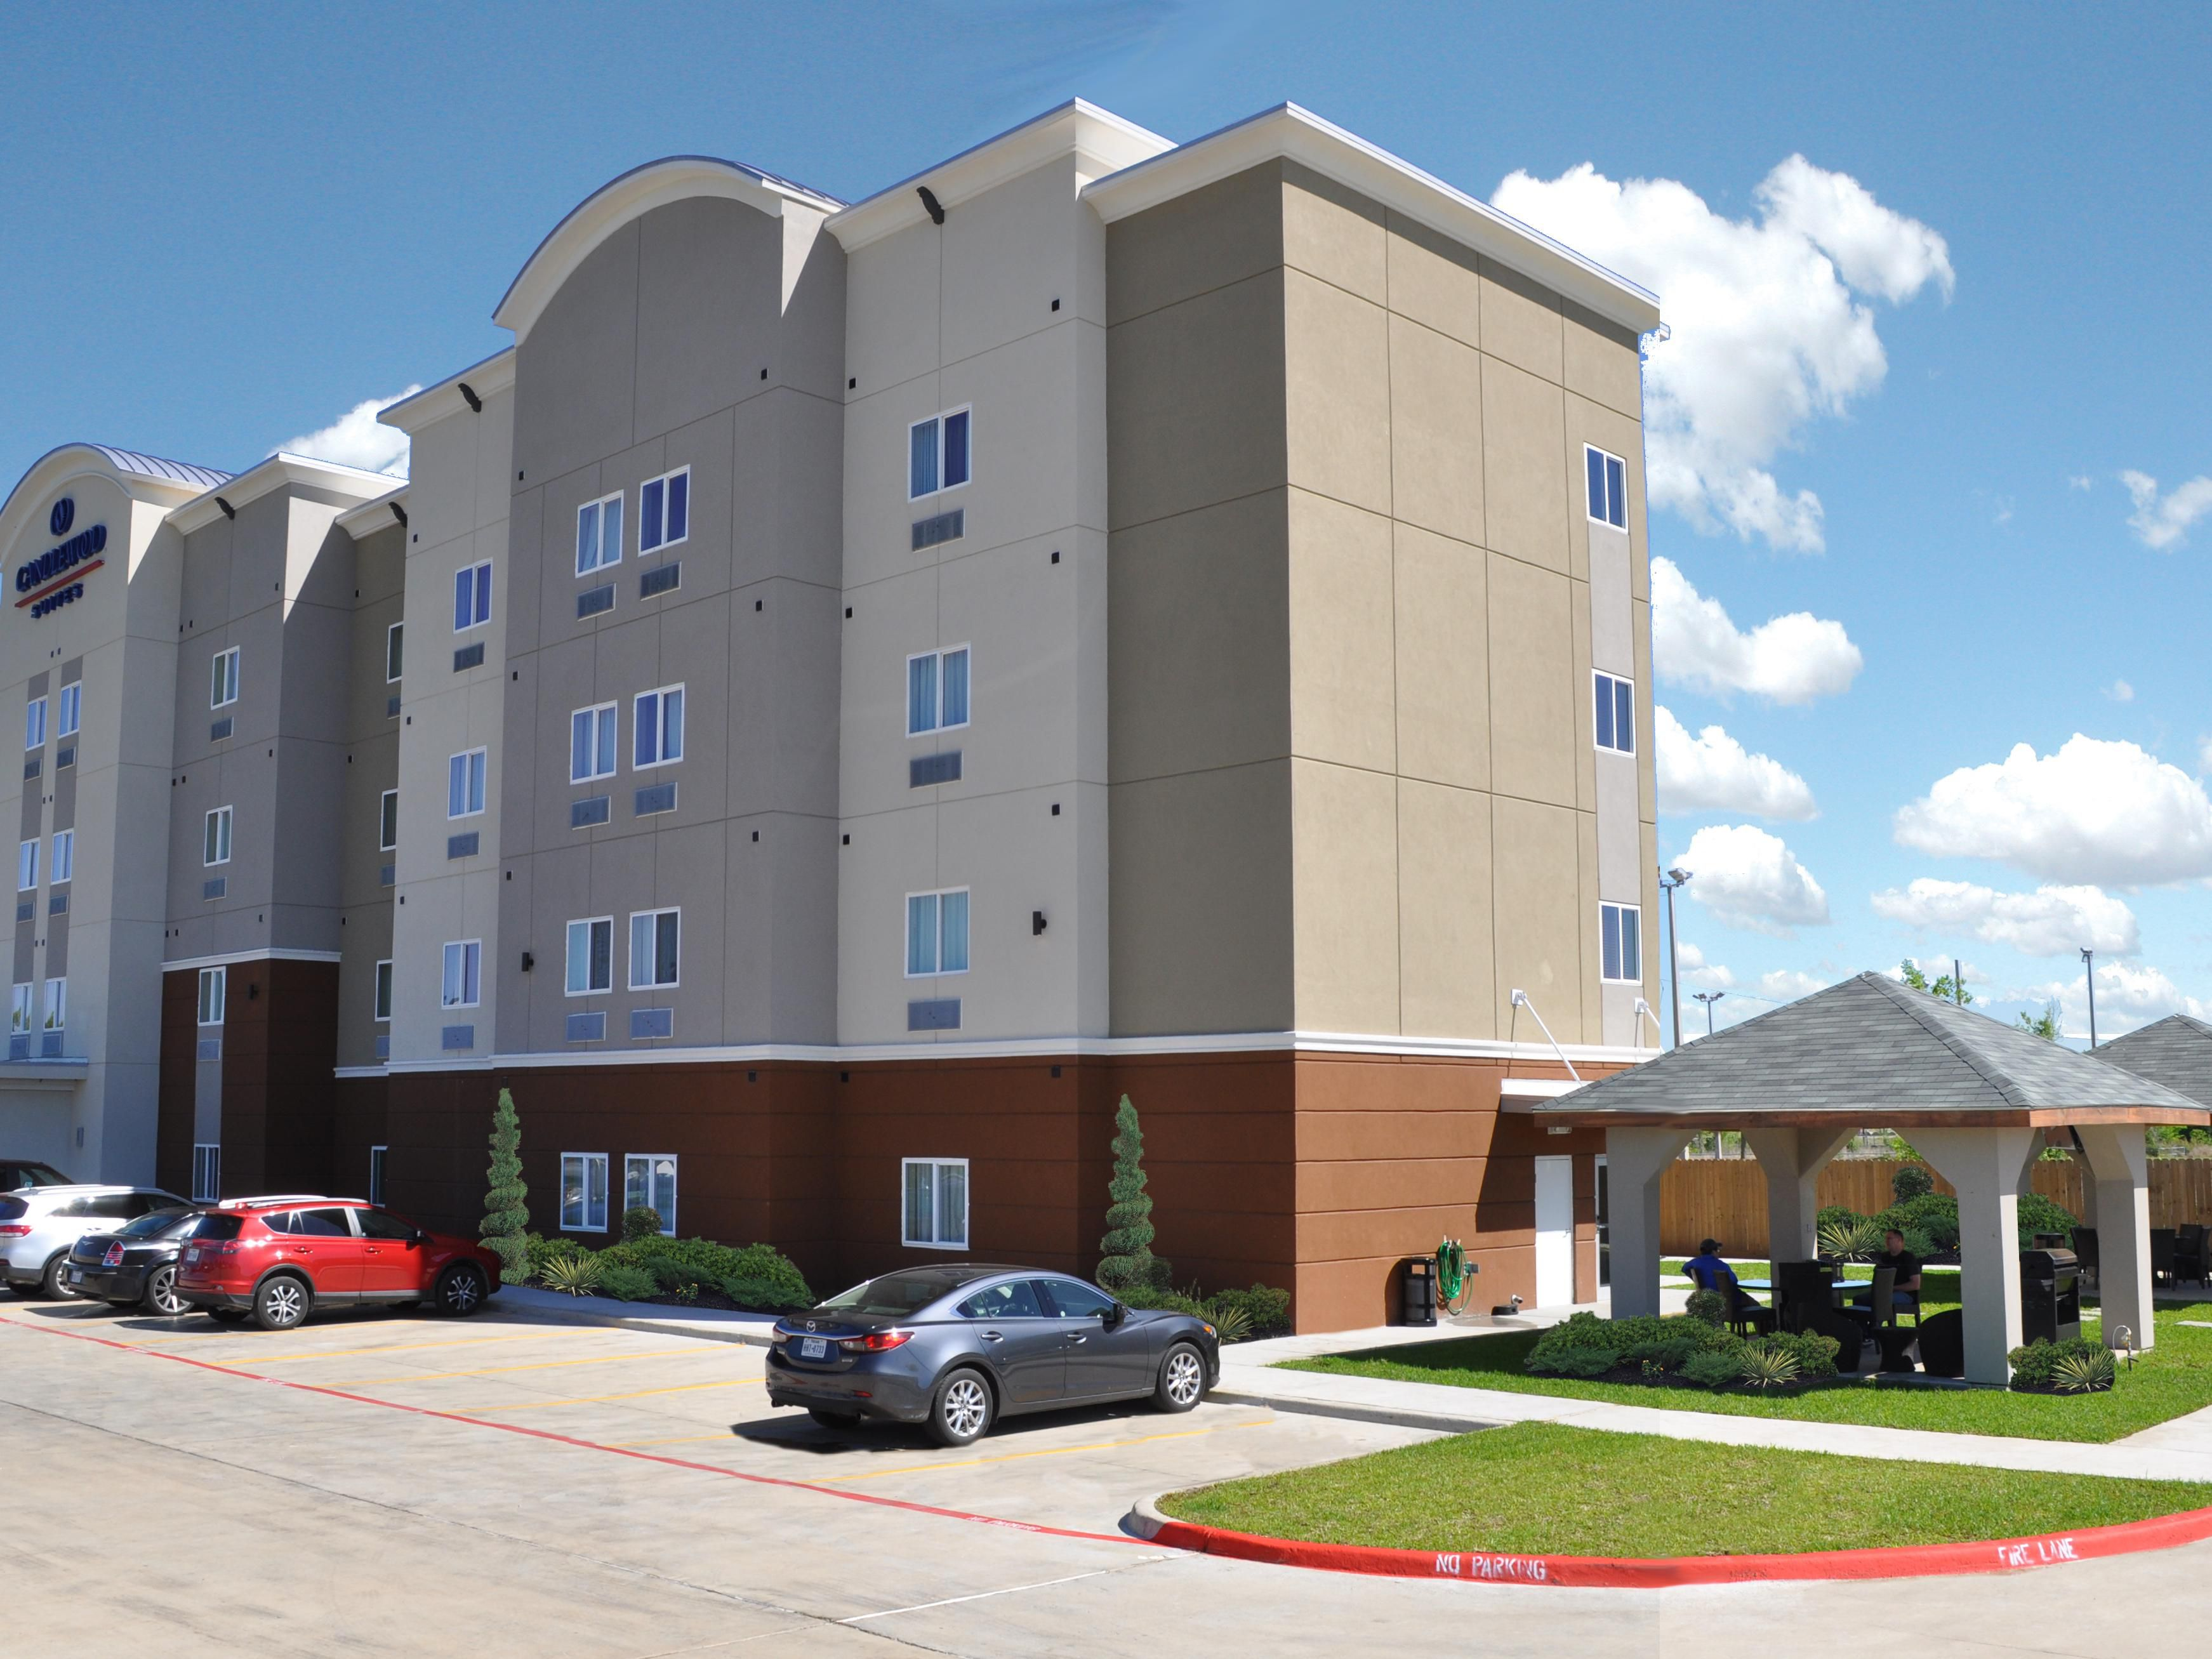 Bay City Hotels Candlewood Suites Extended Stay Hotel In Texas